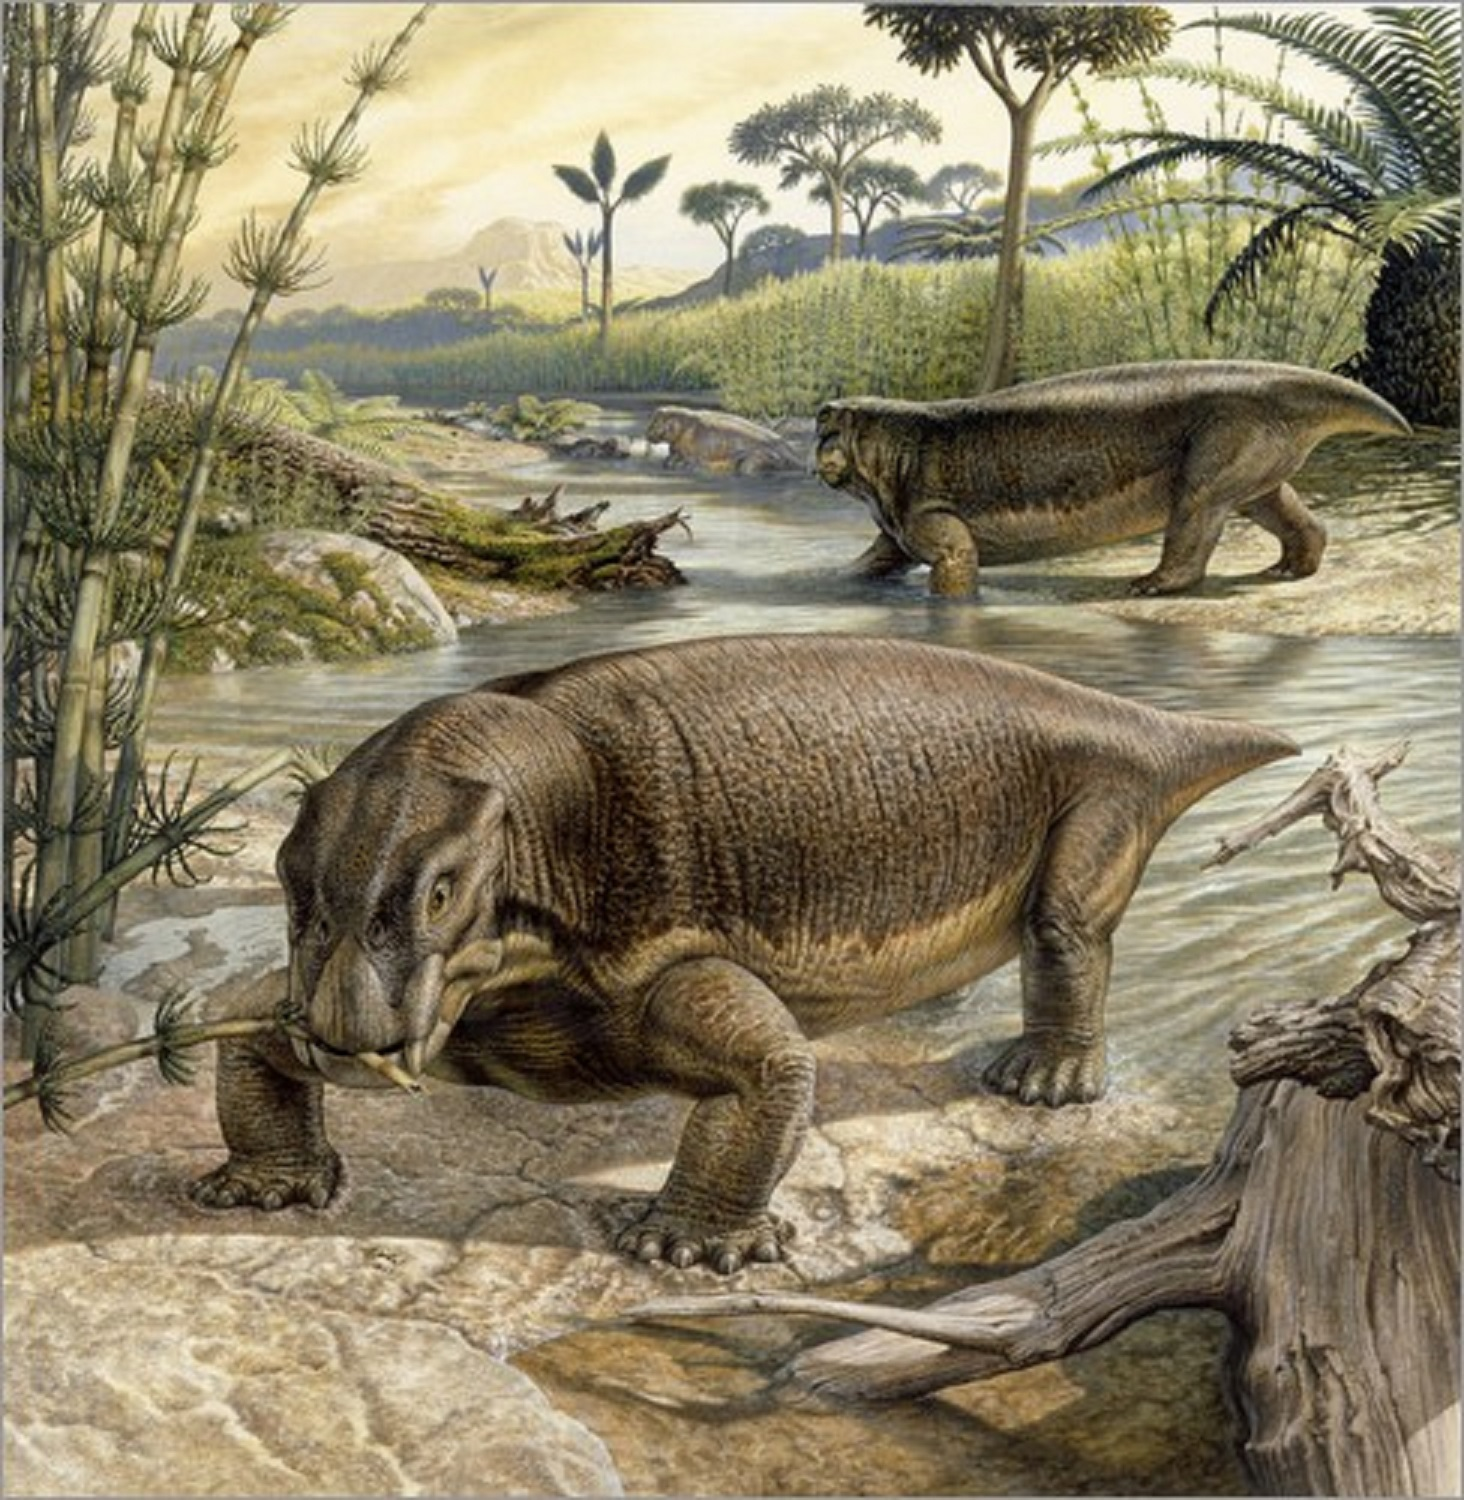 Lystrosaurus: is an extinct genus of dicinodontos therapsid Triassic period